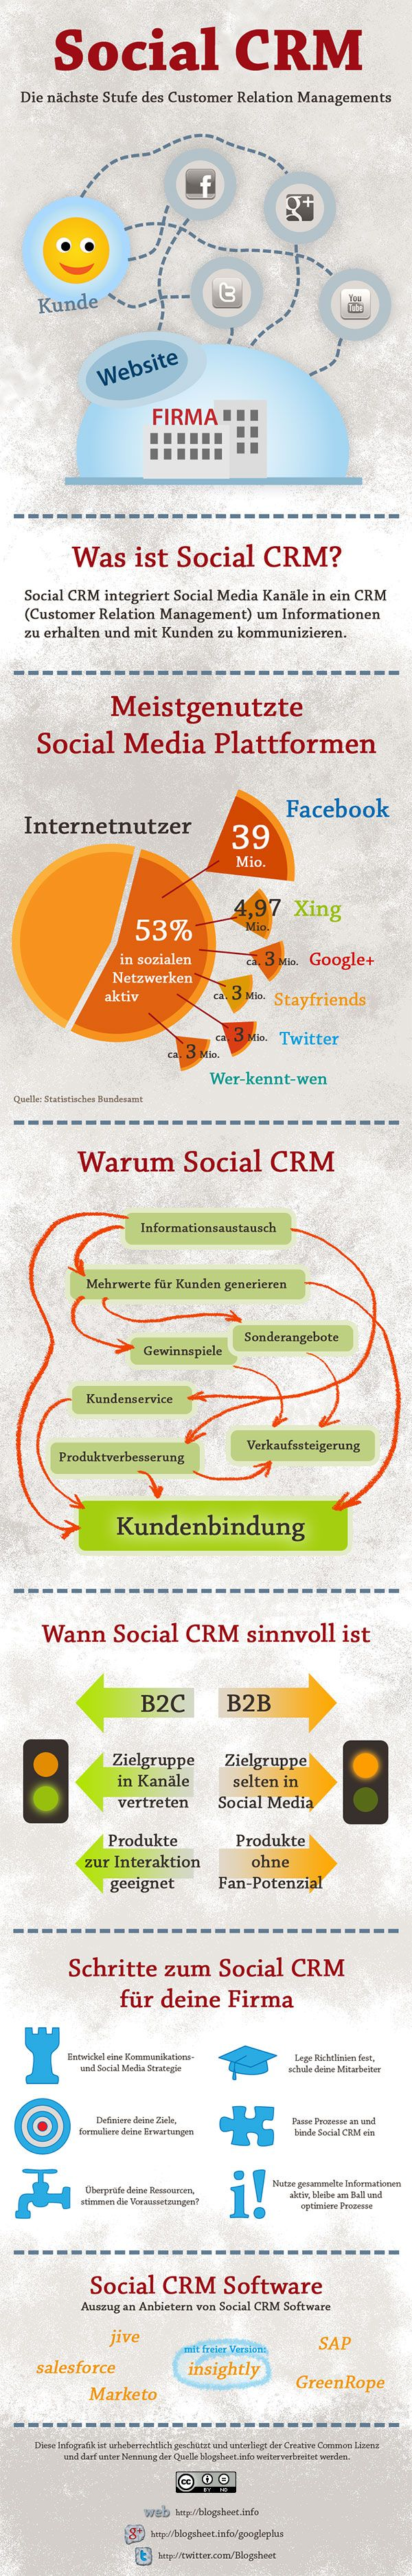 Infografik Social #CRM, die nächste Stufe des Customer Relation Managements! via Blogsheet.info